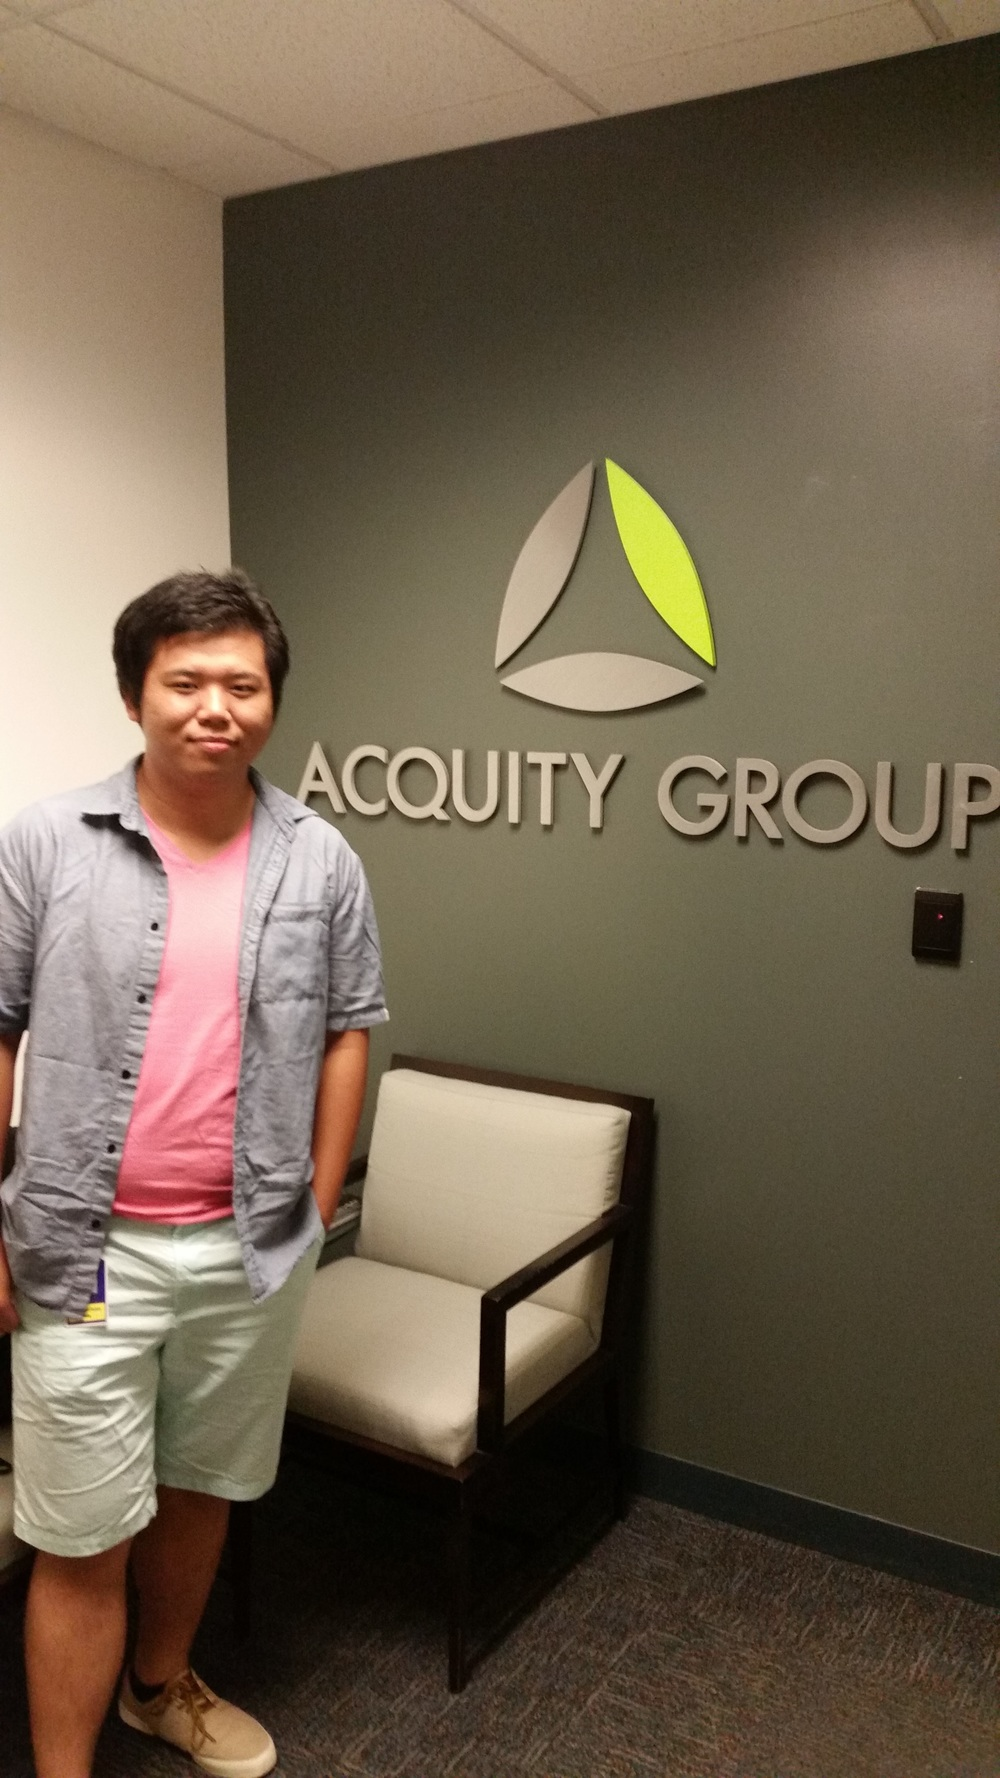 Acquity Group Part of Accenture Interactive